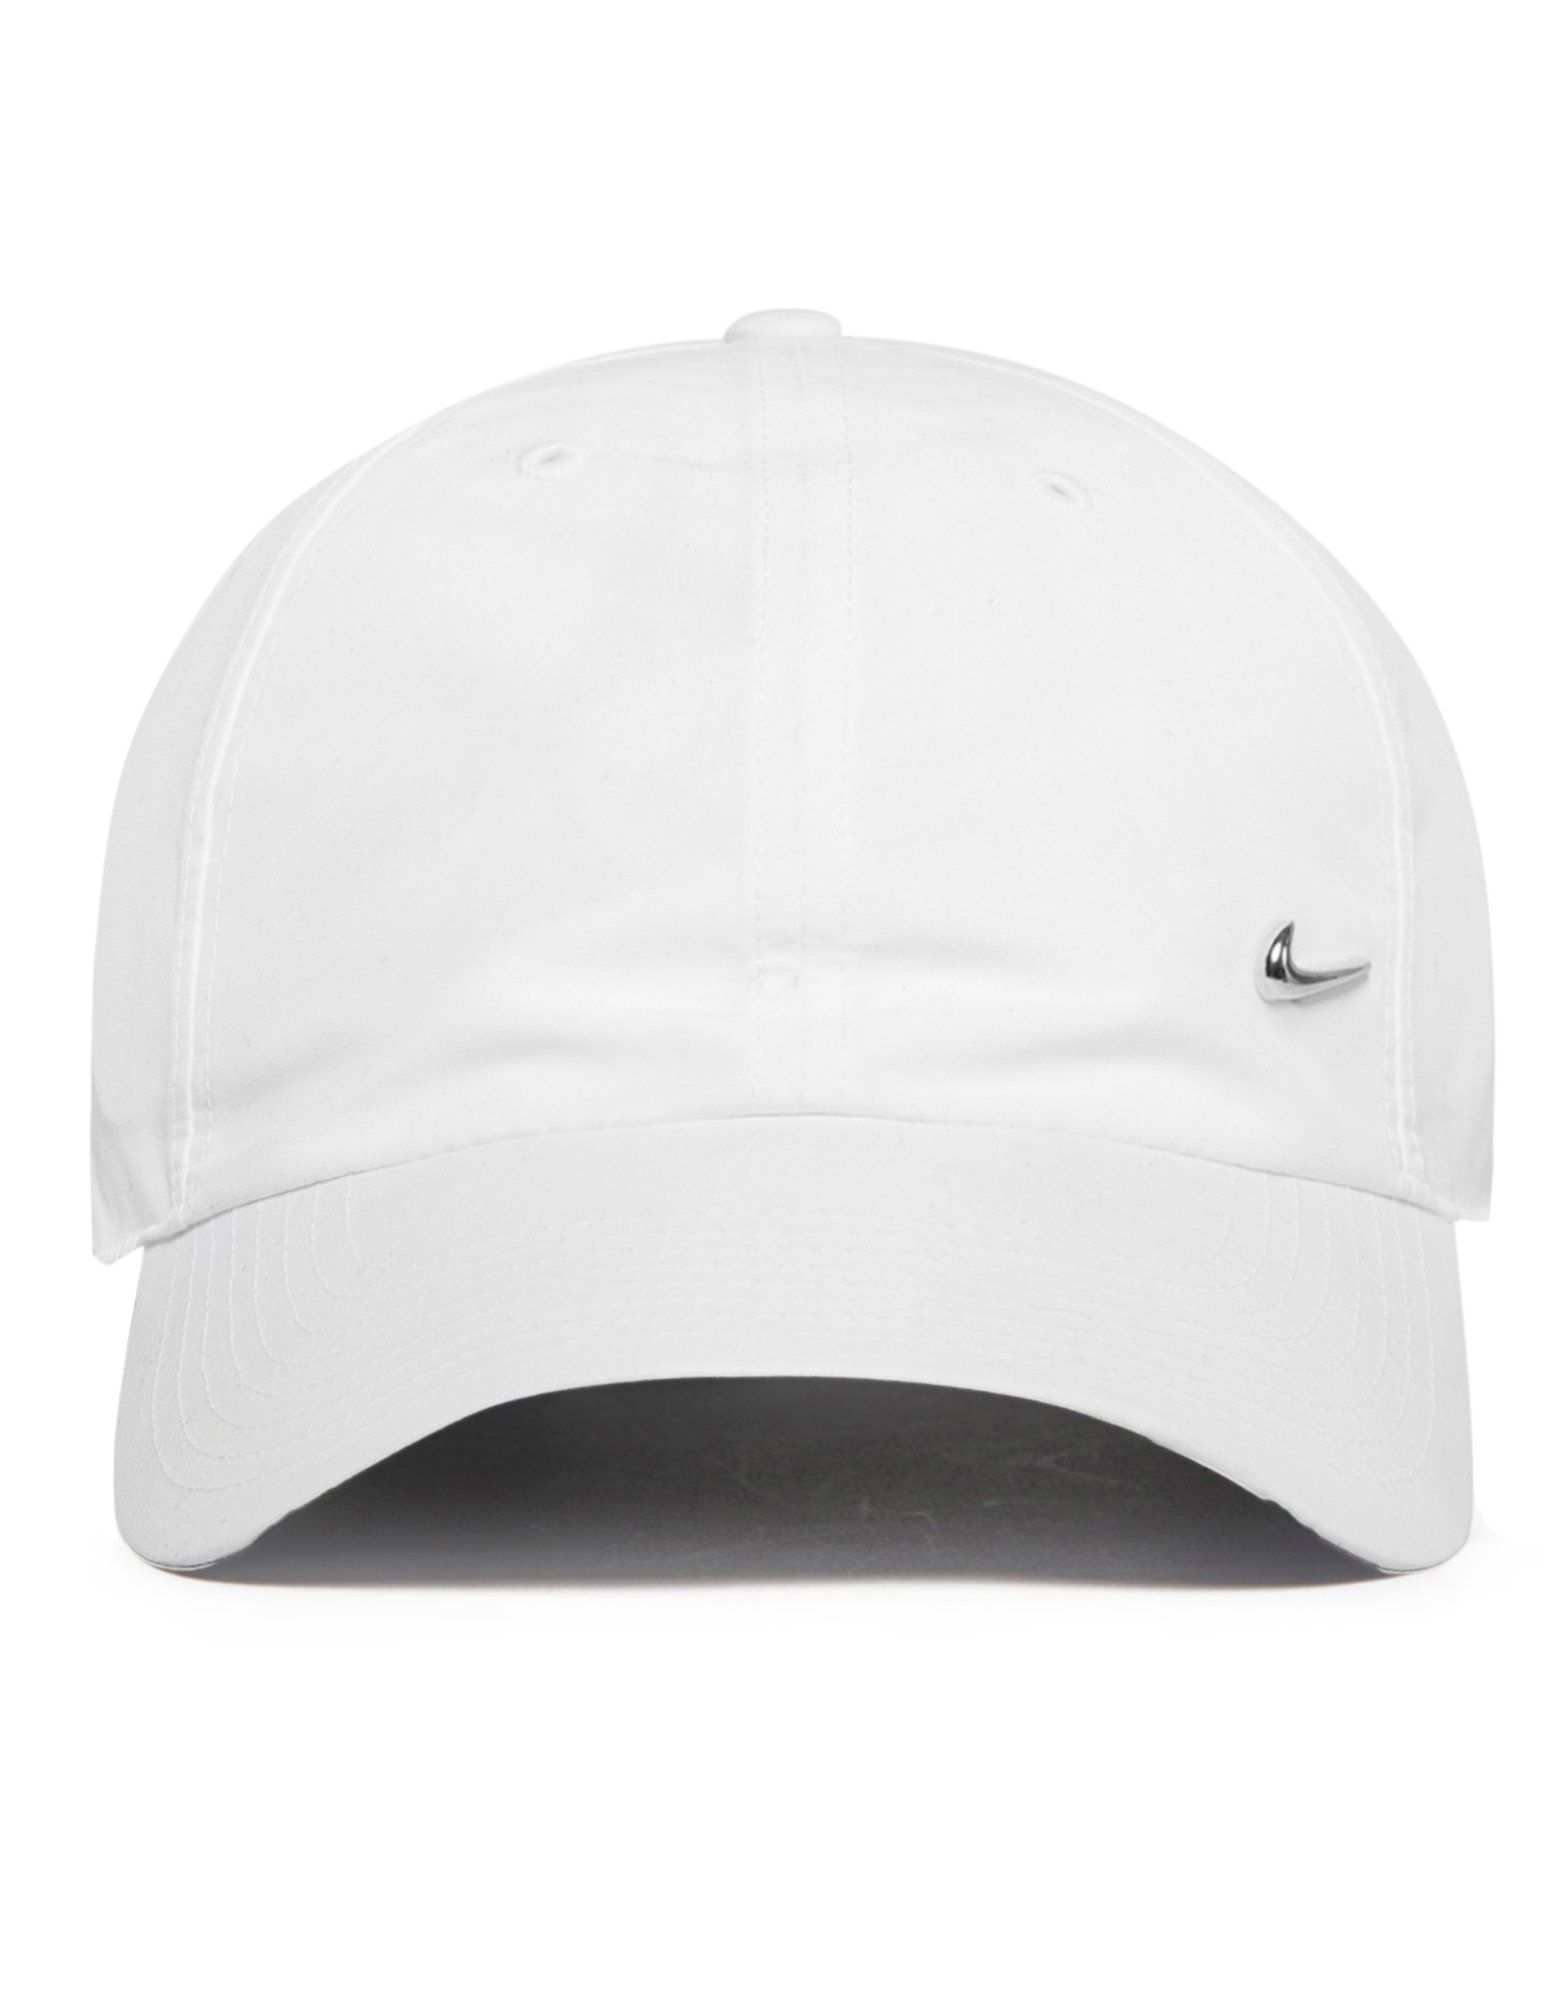 ... 50% off nike side swoosh cap jd sports 60off 2f095 c5c01 ... b2ed4ca66d6